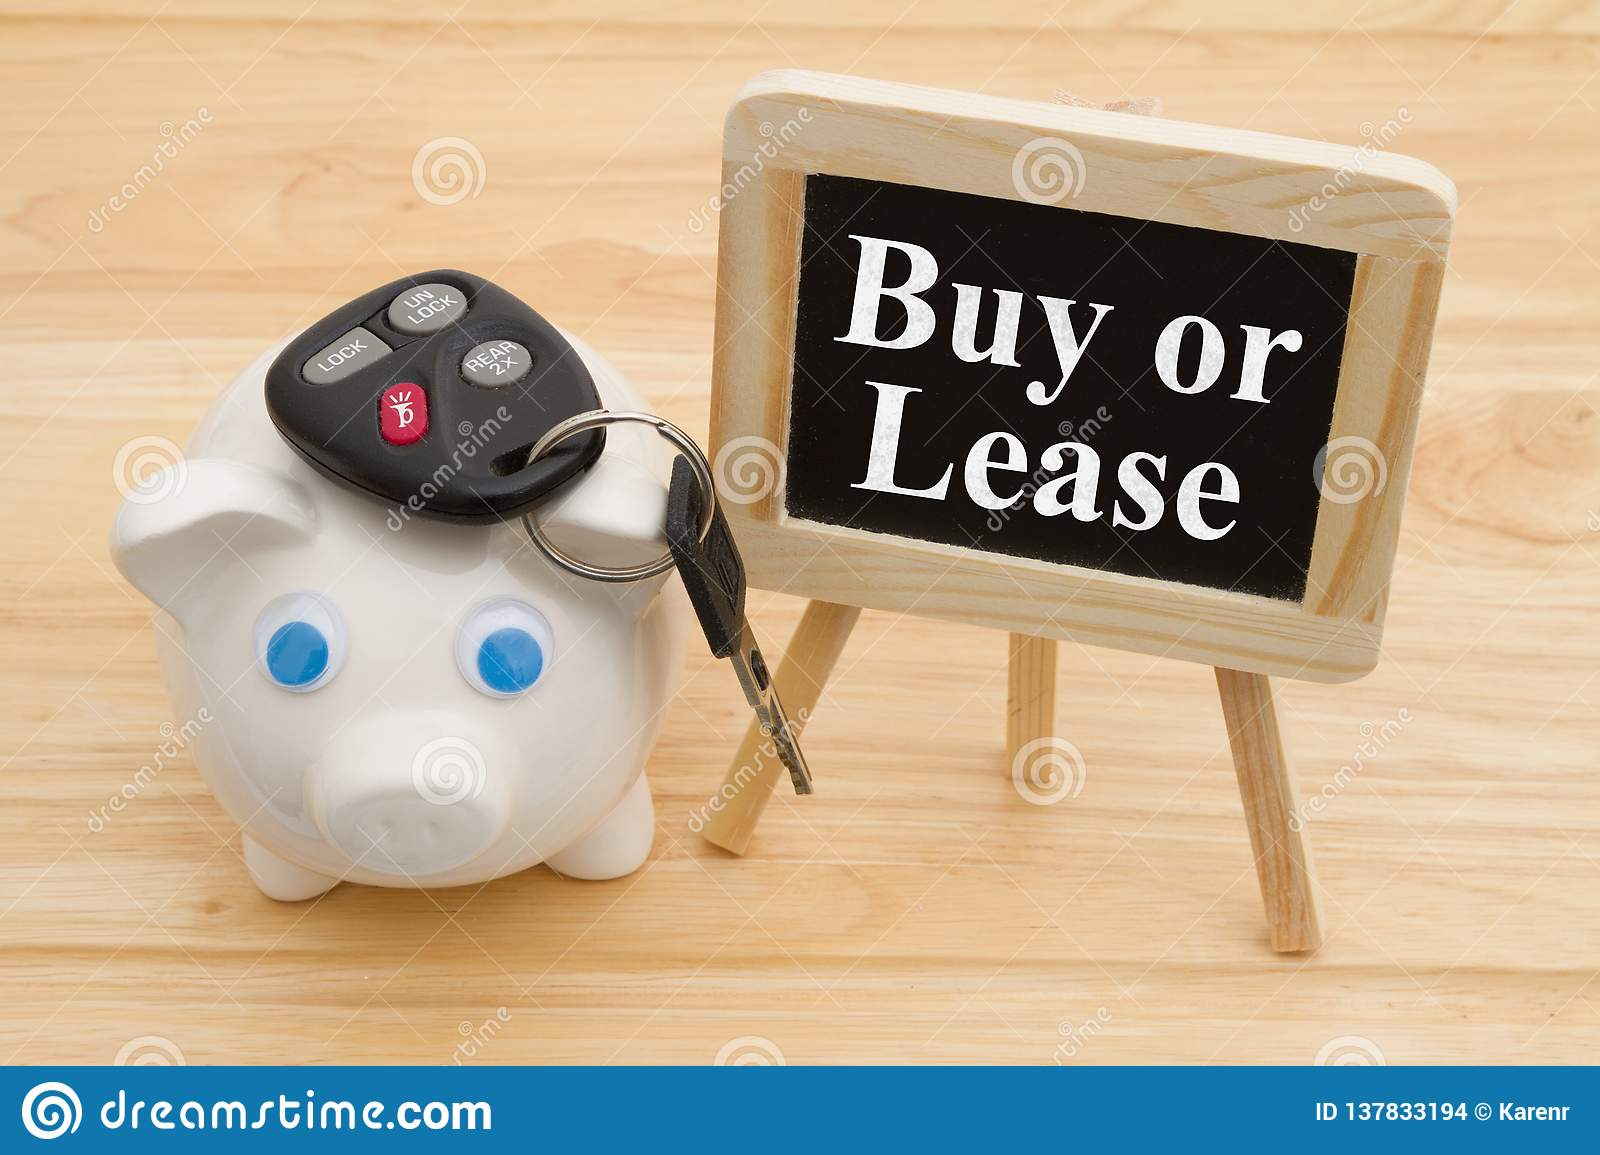 Learning whether to buy or lease car